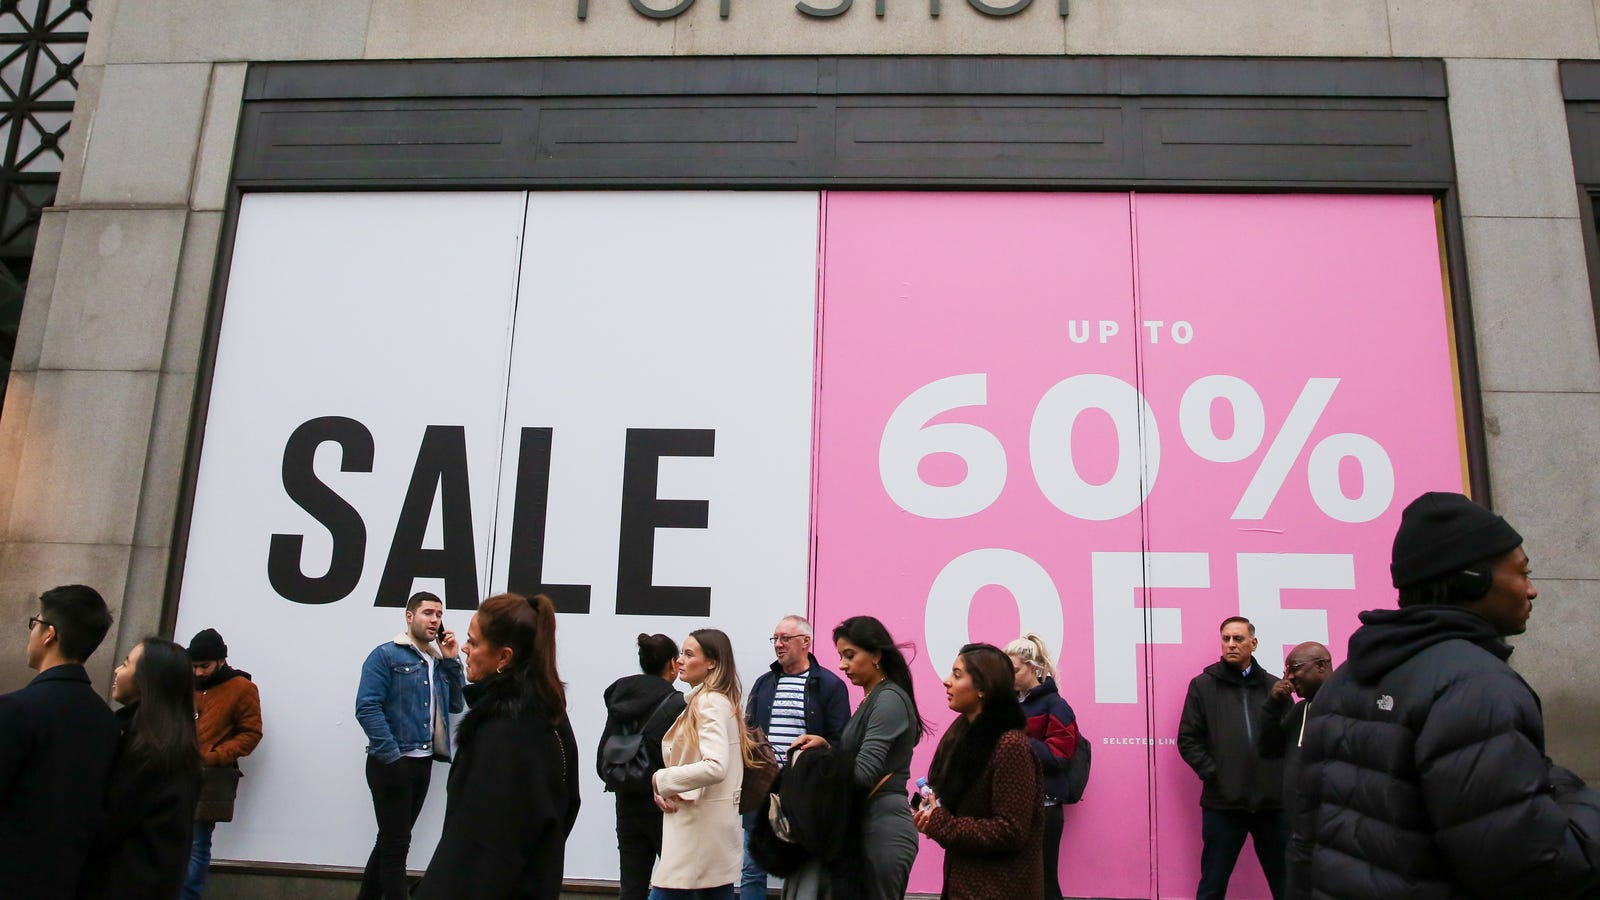 Grand Closing: Topshop to Shutter All U.S. Stores